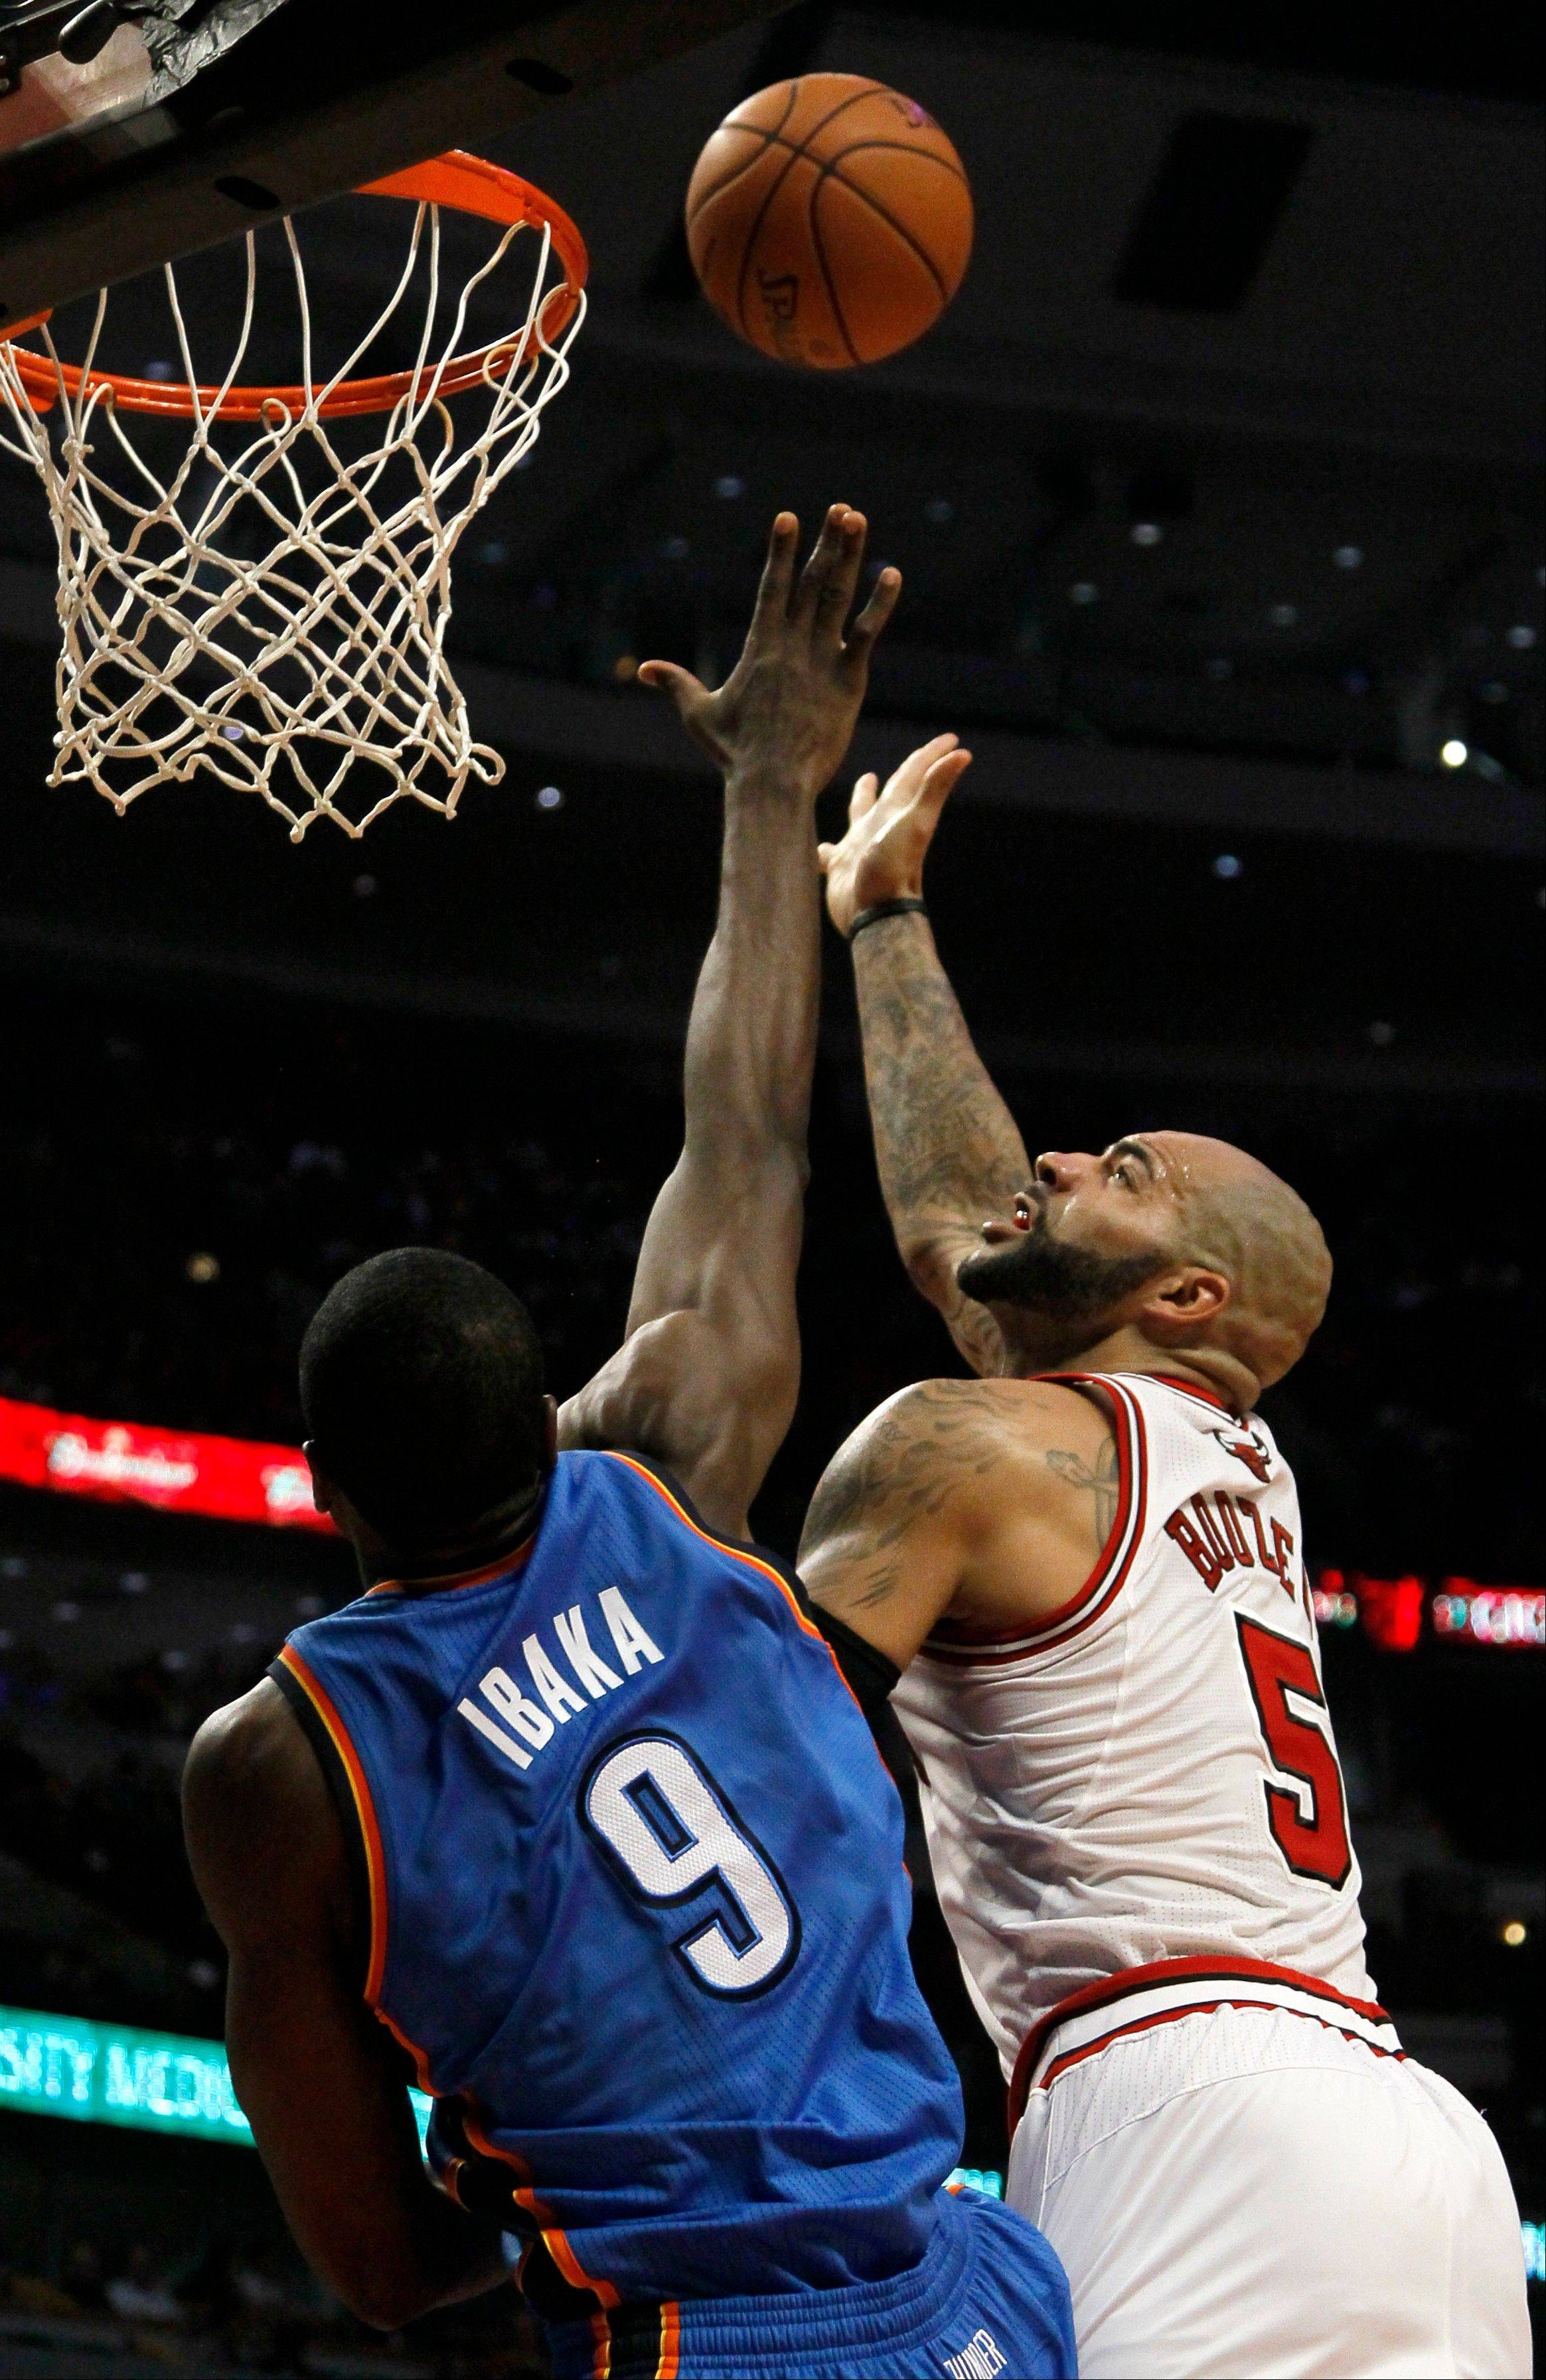 Bulls forward Carlos Boozer says it will take much more than his scoring to replace the injured Derrick Rose.